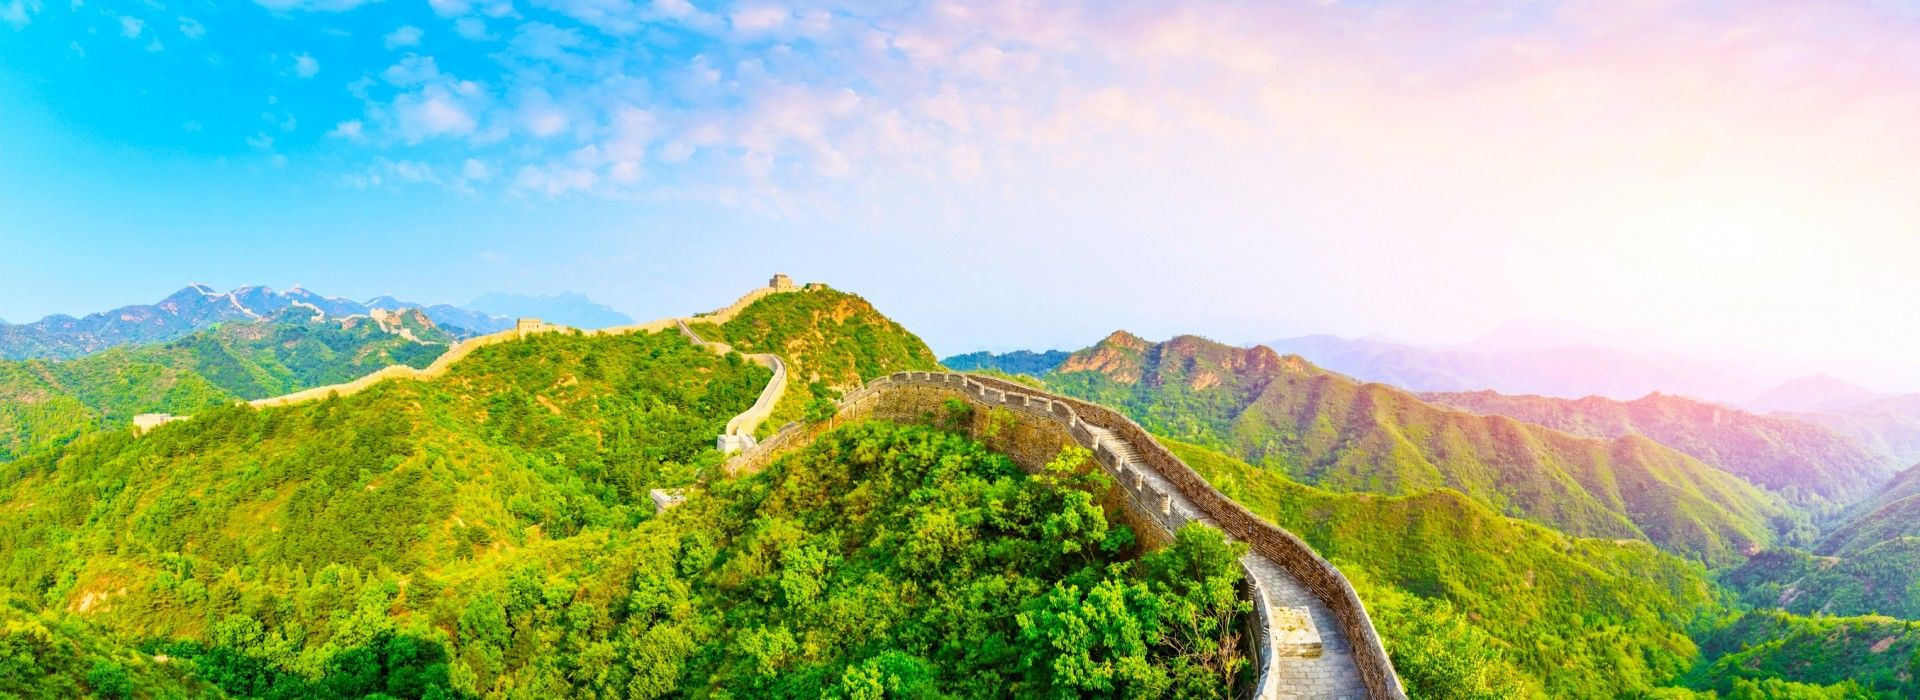 Rickshaw, cycle or local transport tours in China